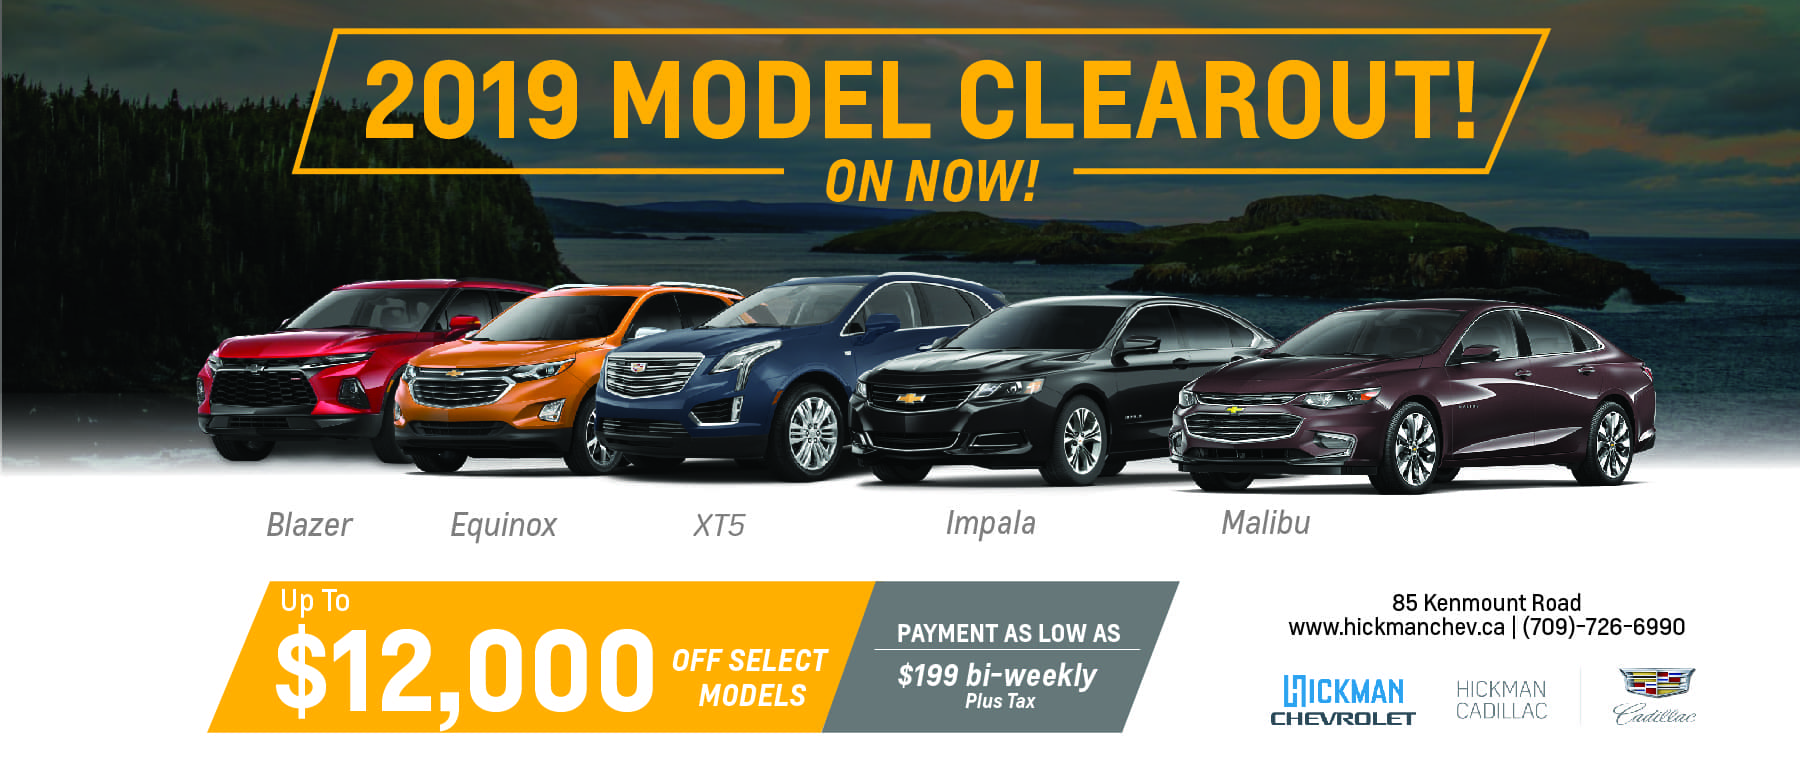 2019 Model Clear Out – Chevrolet Cadillac – Web Banner-01-01